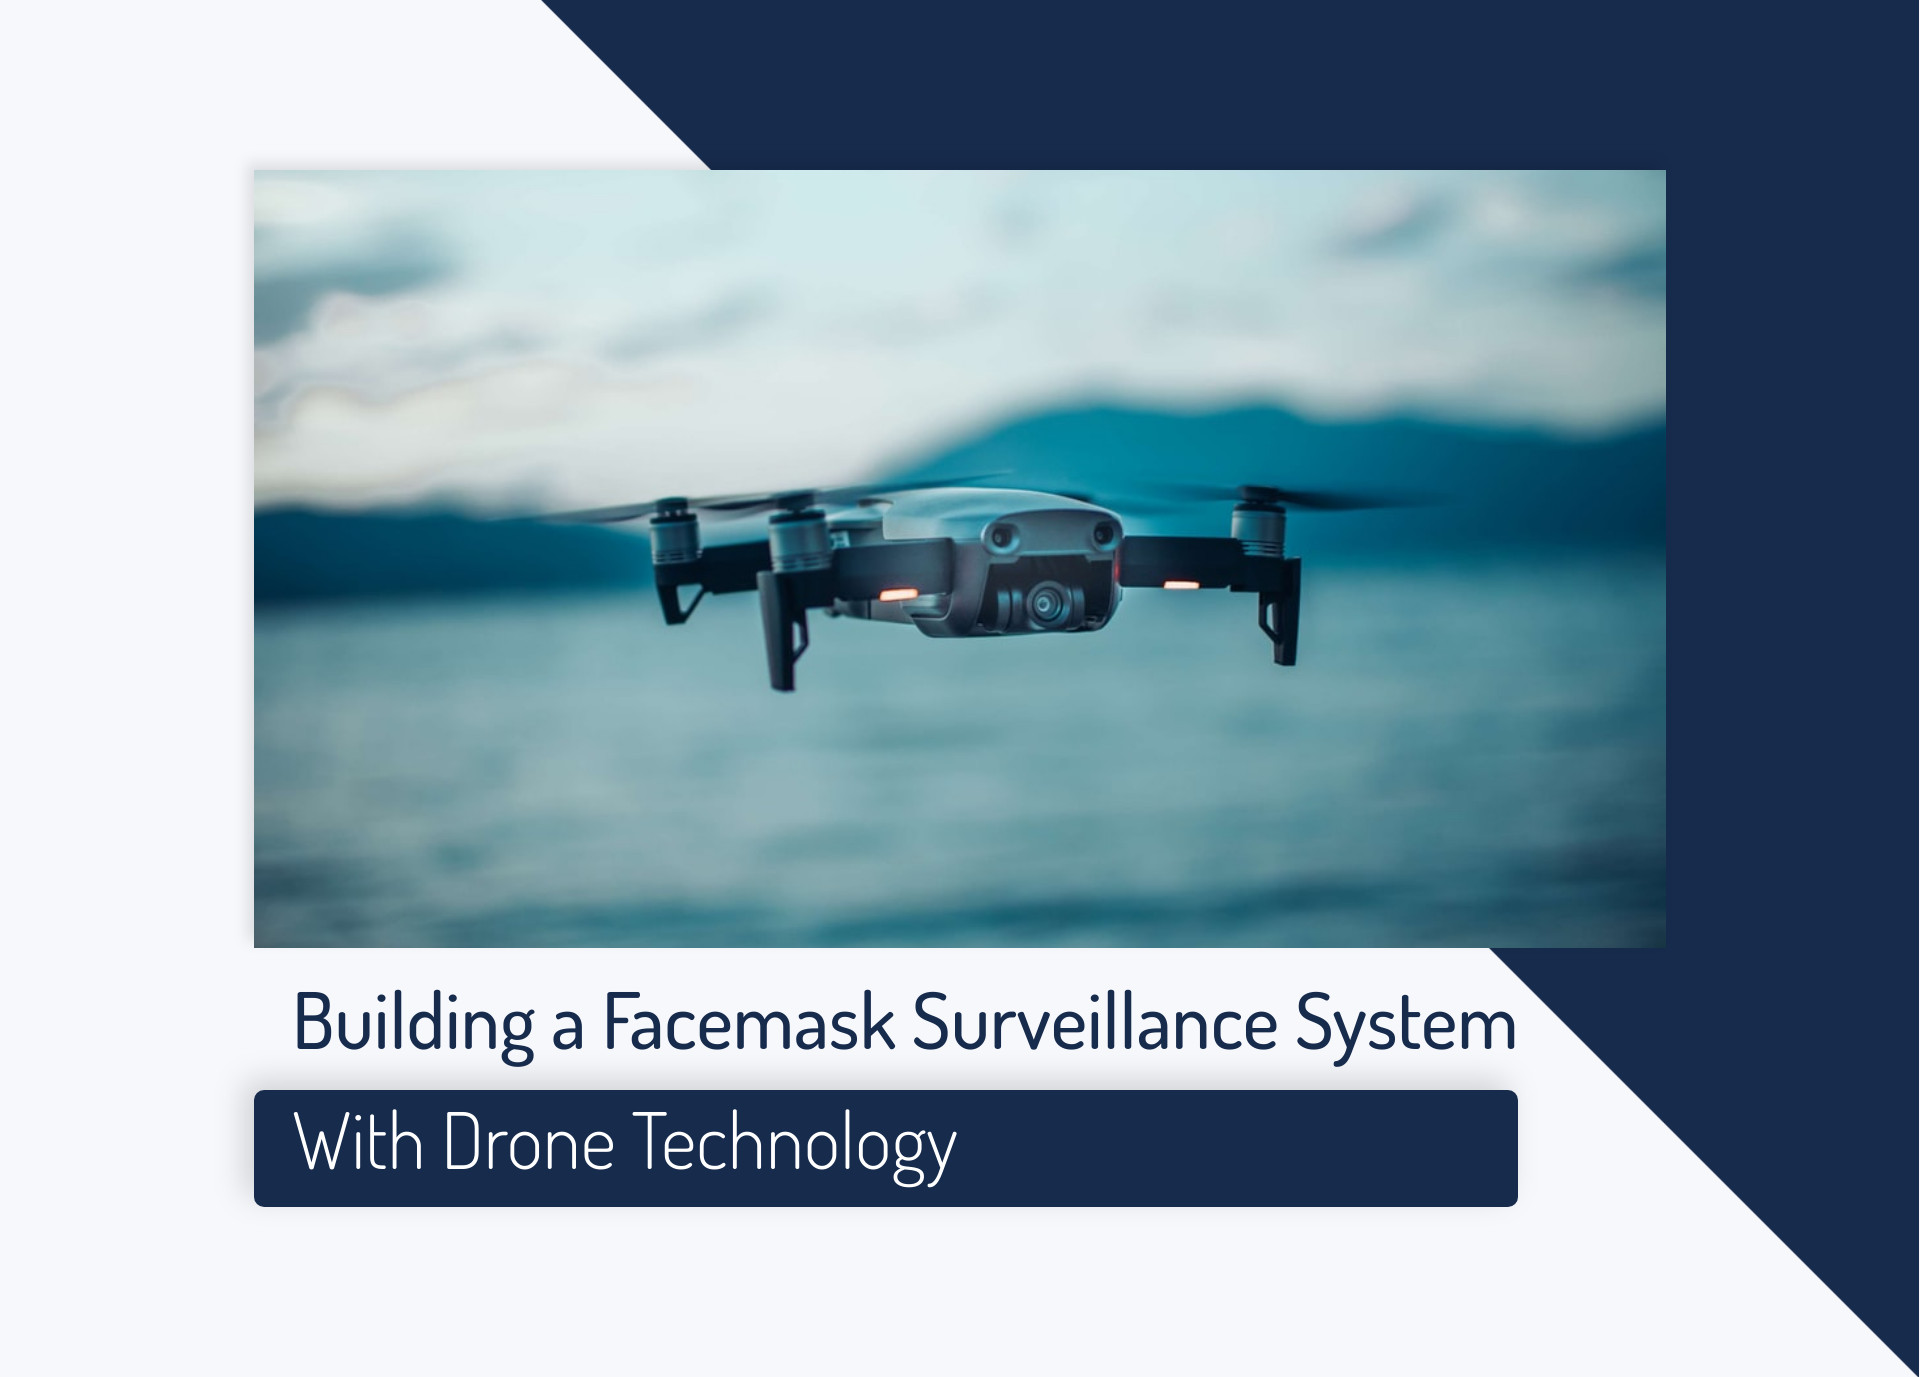 Building a Facemask Surveillance System with Drone Technology